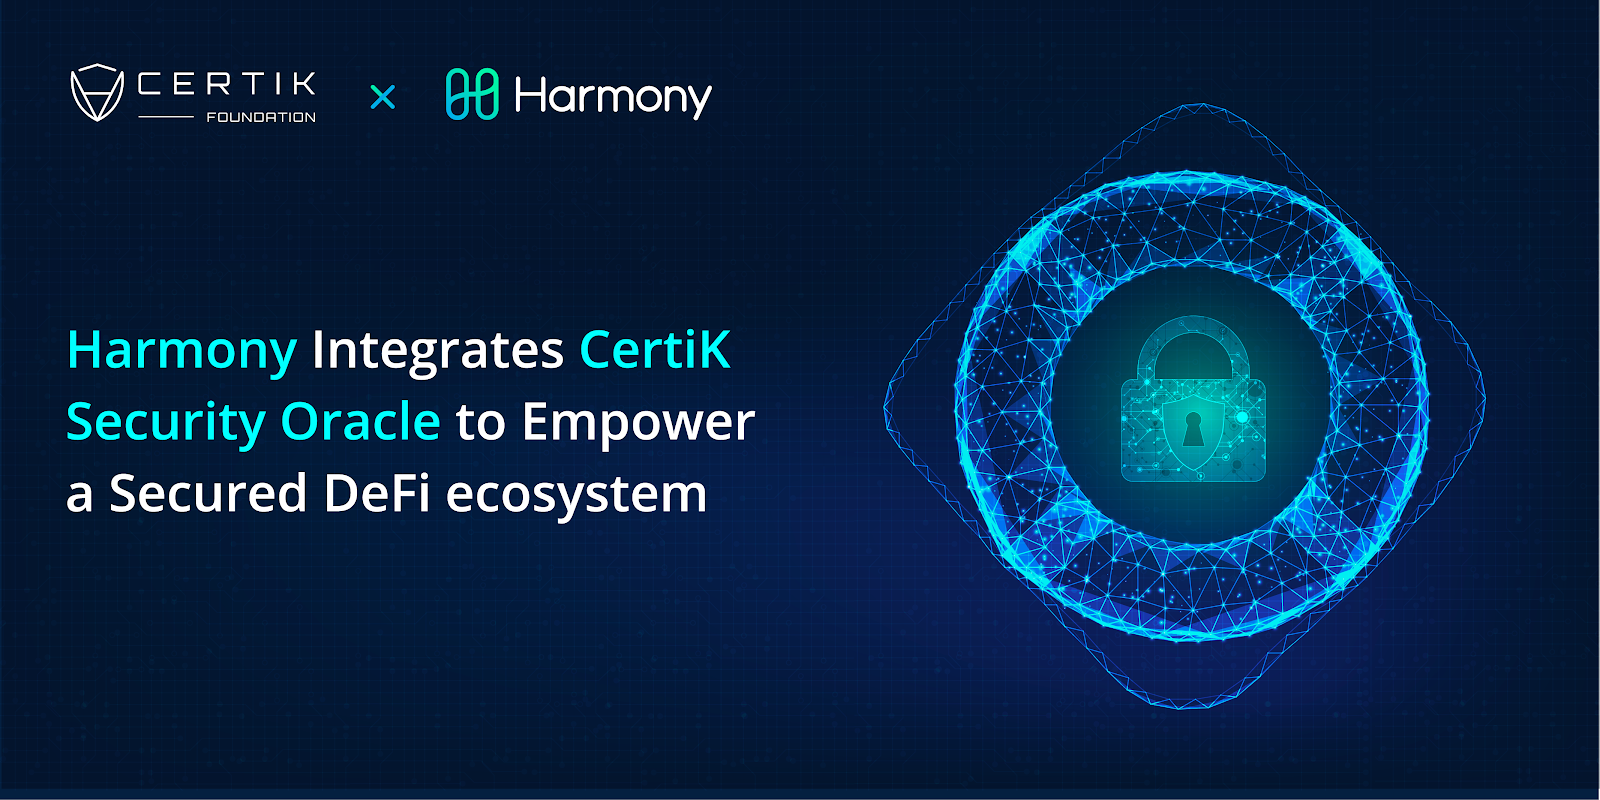 Harmony Integrates CertiK Security Oracle to Empower a Secured DeFi ecosystem